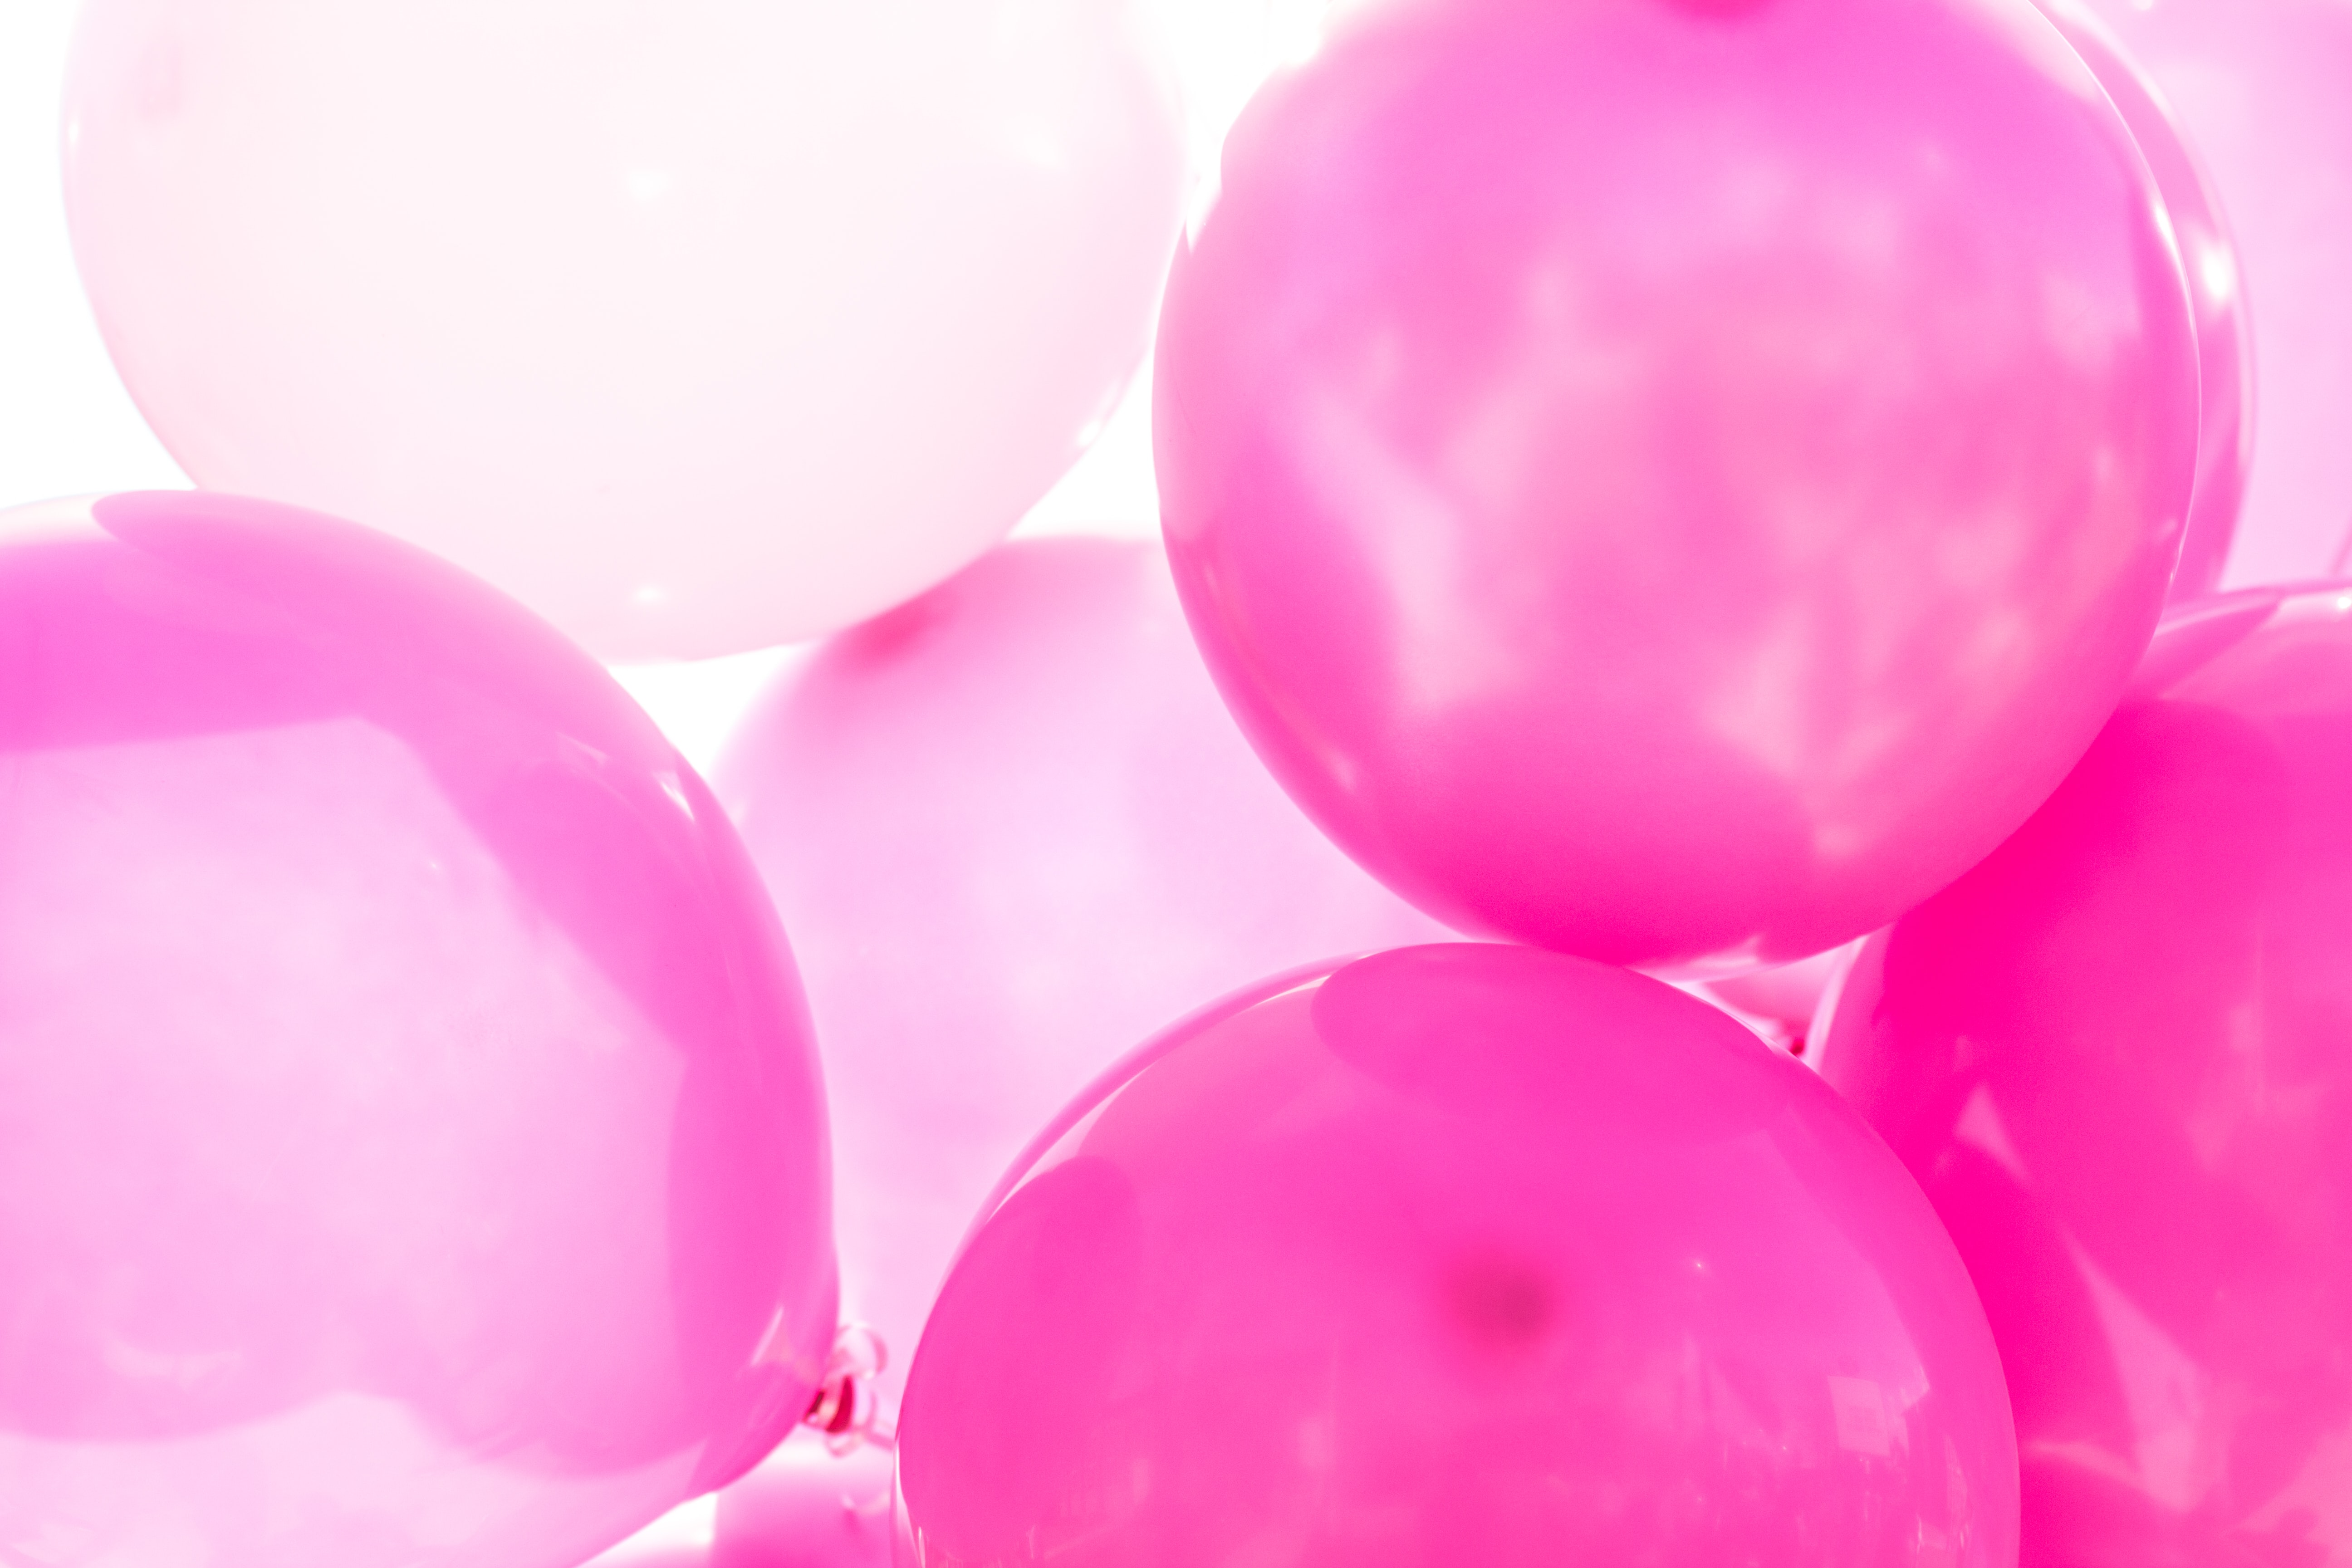 Pink and purple balloons.